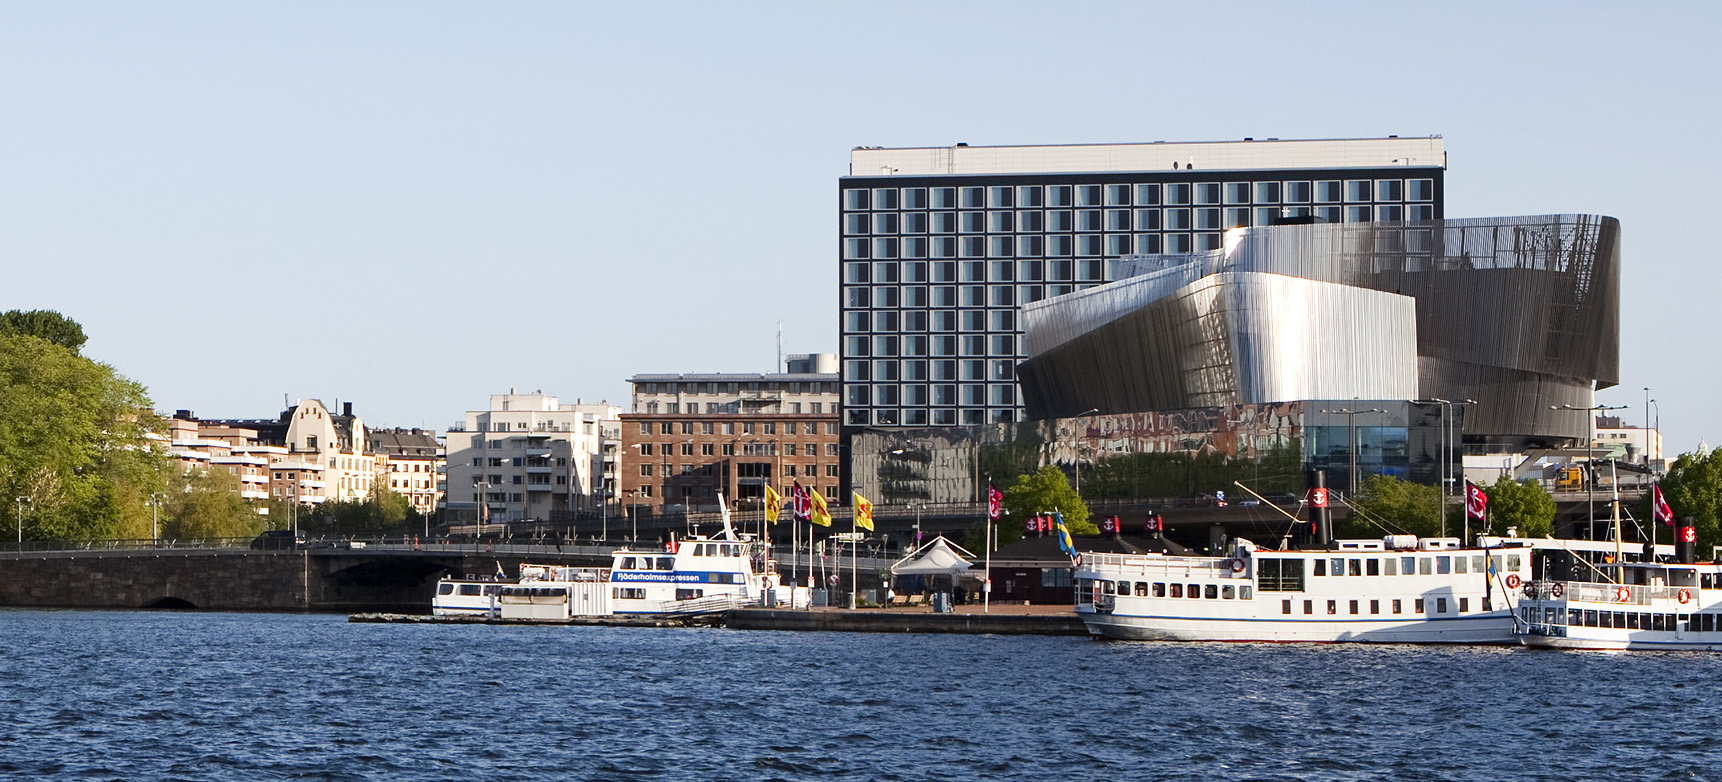 How to get to_IEC_General_Meeting_2020_Stockholm_sweden